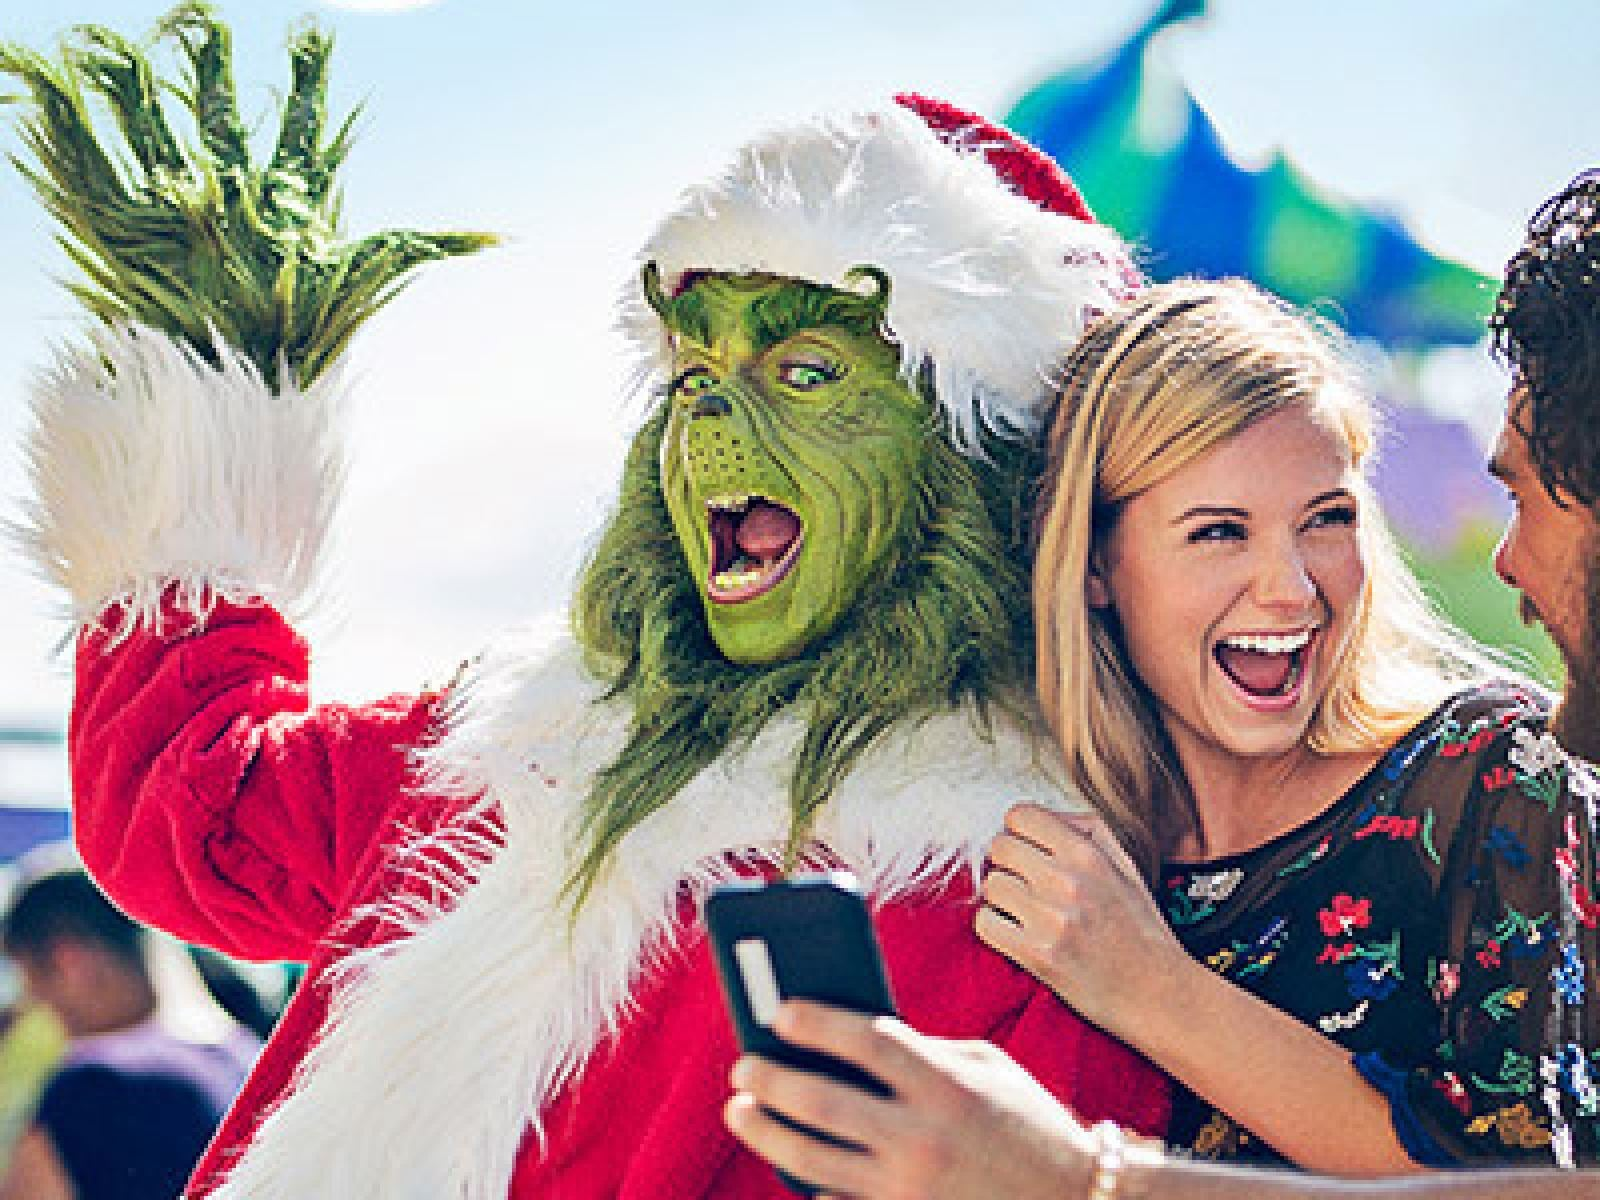 Main image for event titled Create New Holiday Traditions at Universal Studios Hollywood Nov. 28 – Dec. 29